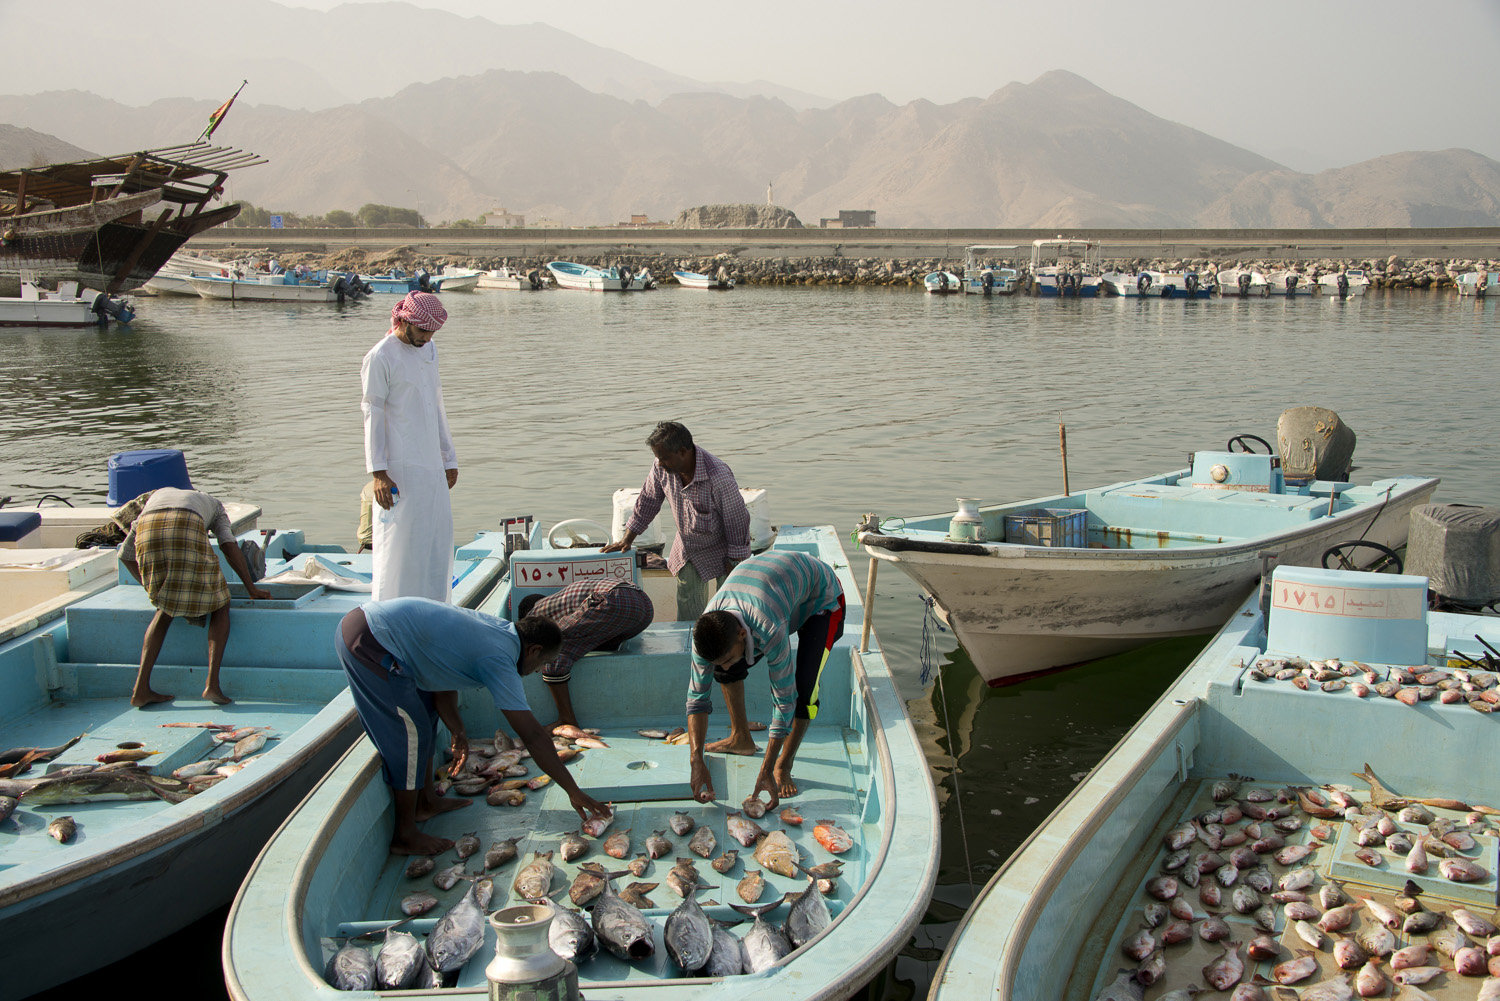 jo-kearney-video-photos-photography-travel-portraits-prints-for-sale-Oman-Dibba-fishing-port-traditional-port.jpg